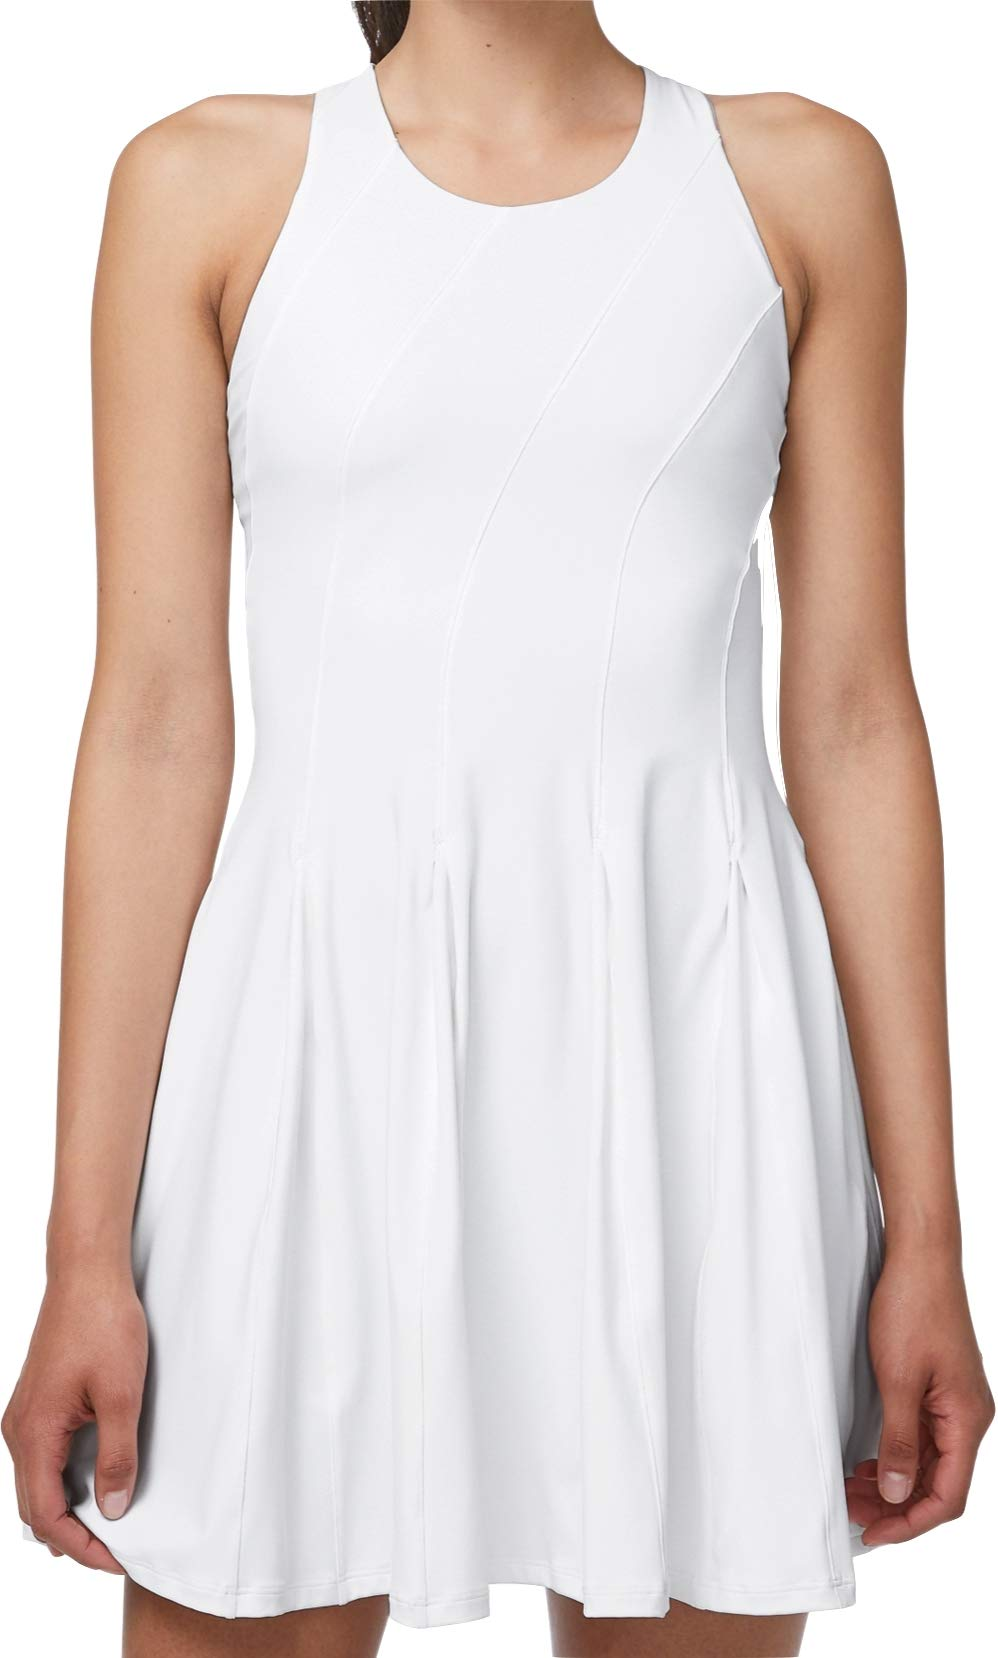 Lululemon Court Crush Dress Tennis Dress (White, 2) by Lululemon